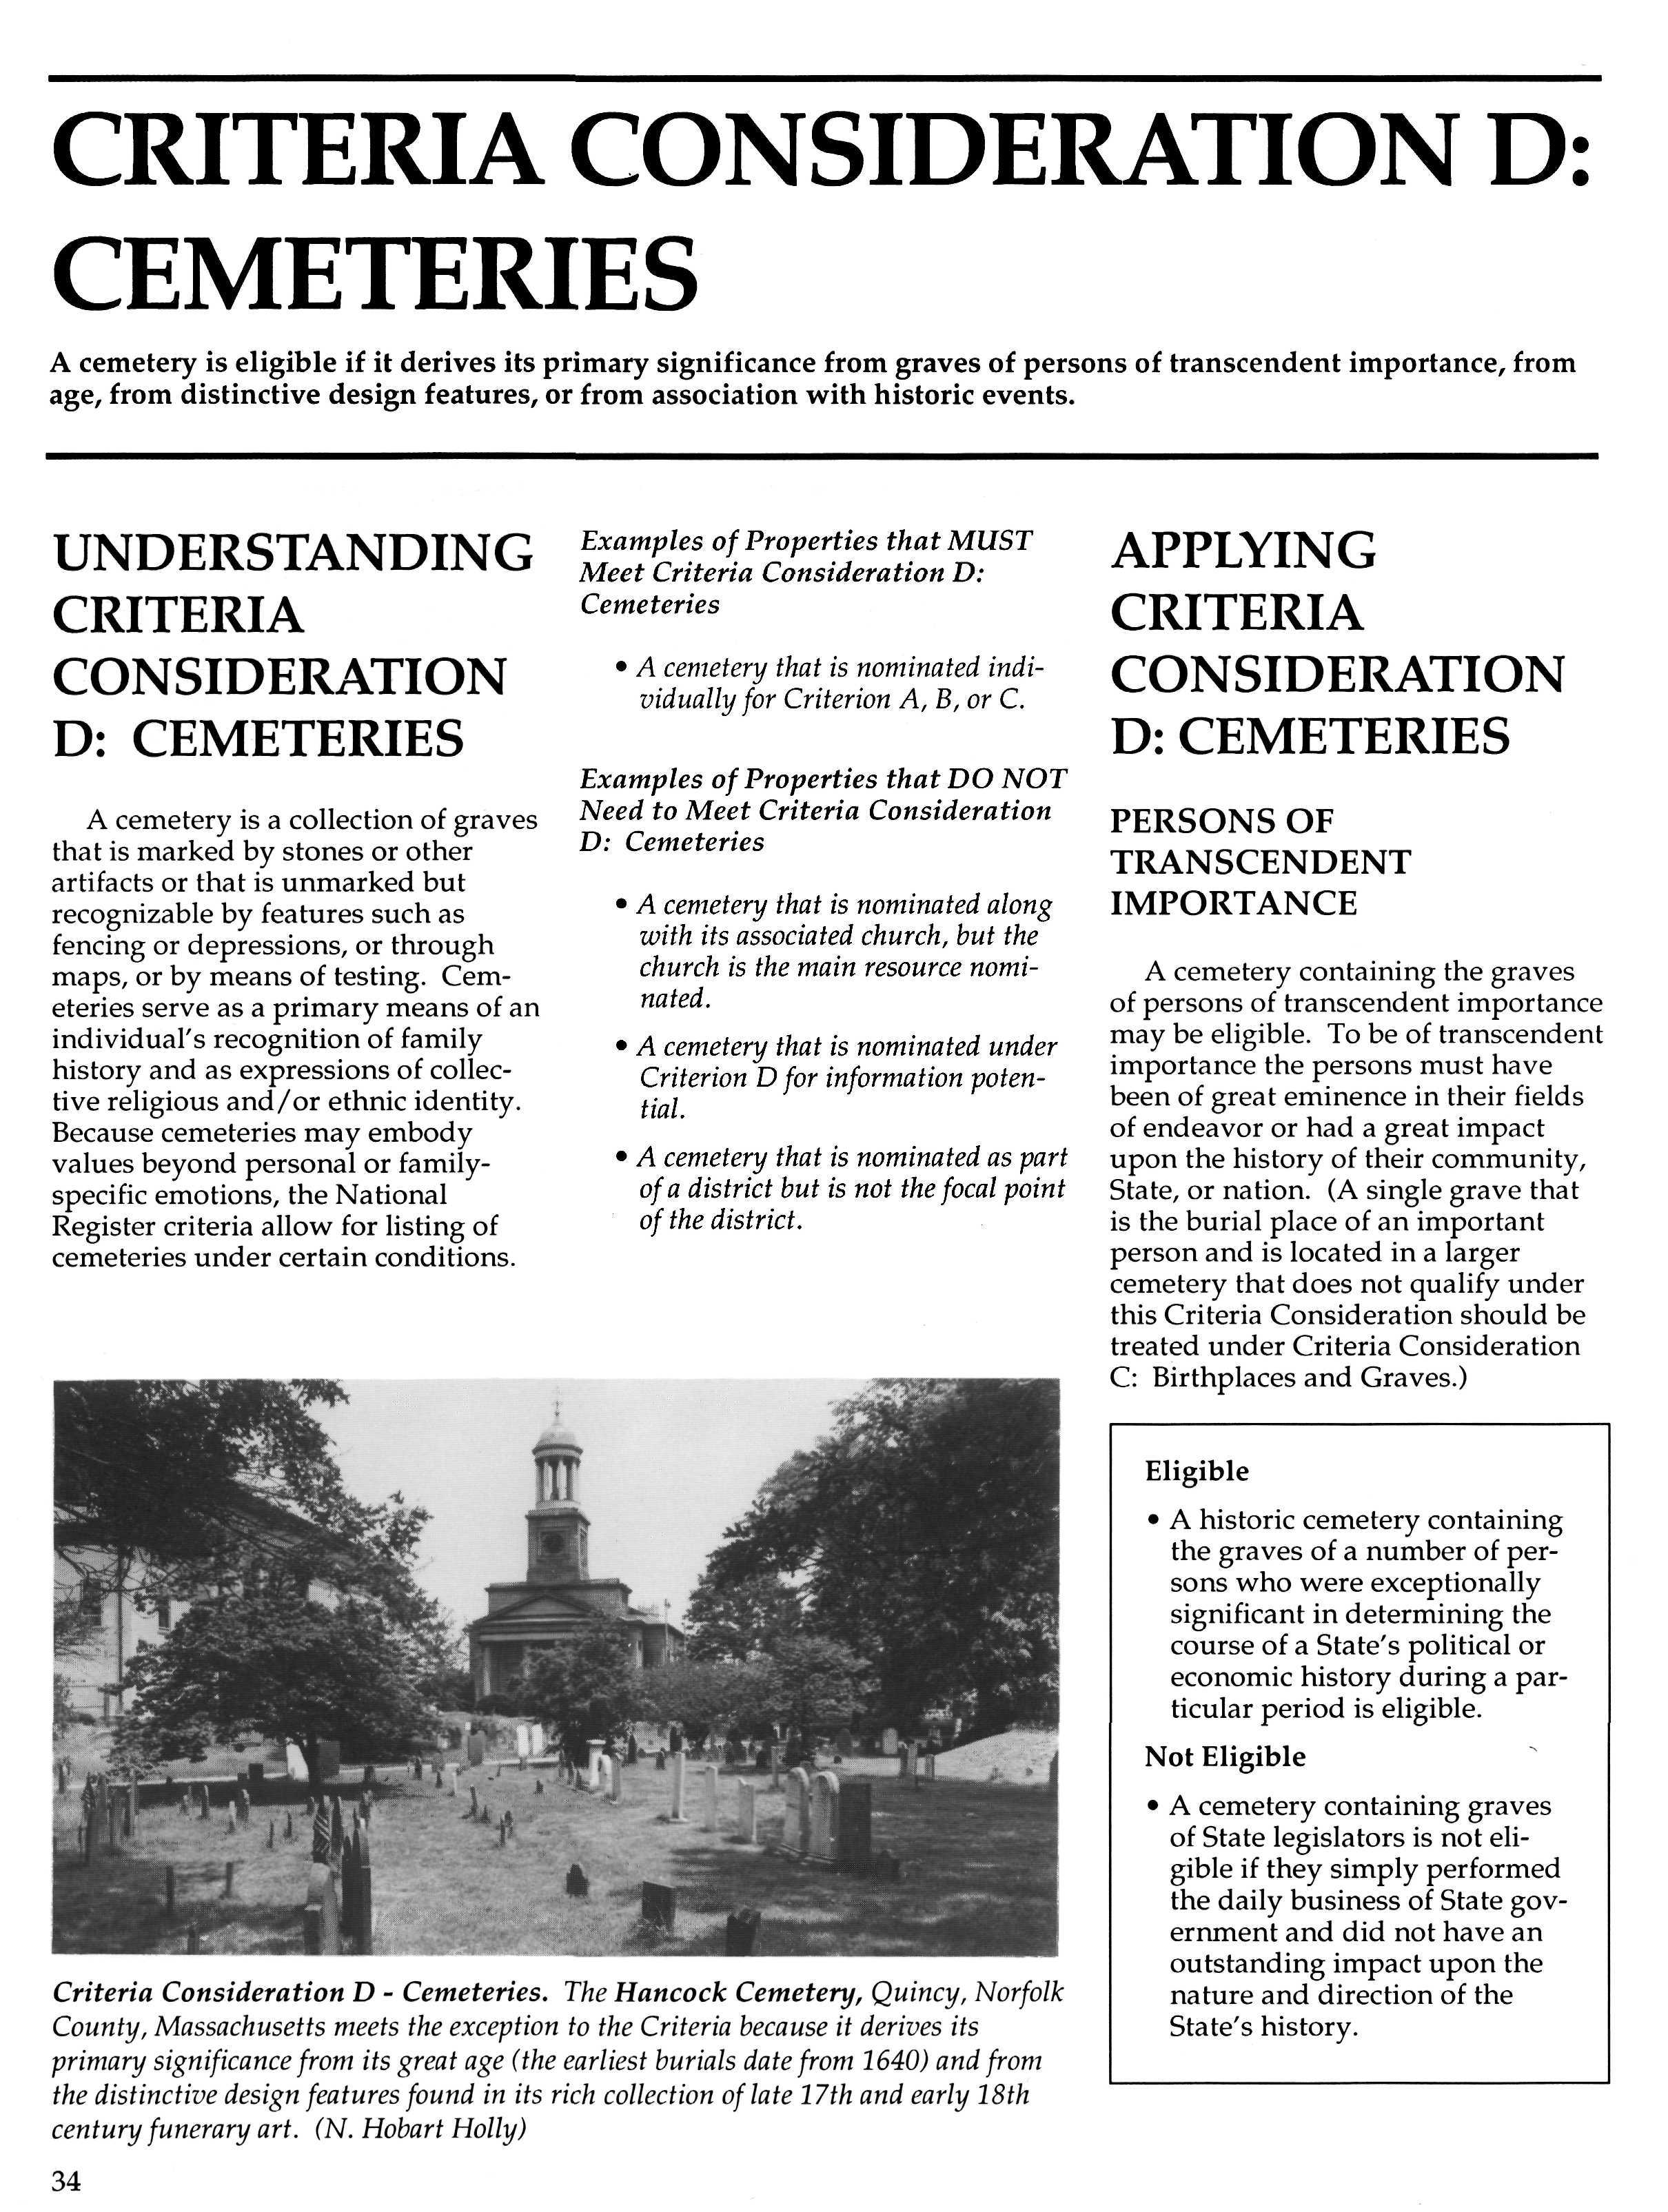 CRITERIA CONSIDERATION D: CEMETERIES A cemetery is eligible if it derives its primary significance from graves of persons of transcendent importance, from age, from distinctive design features, or